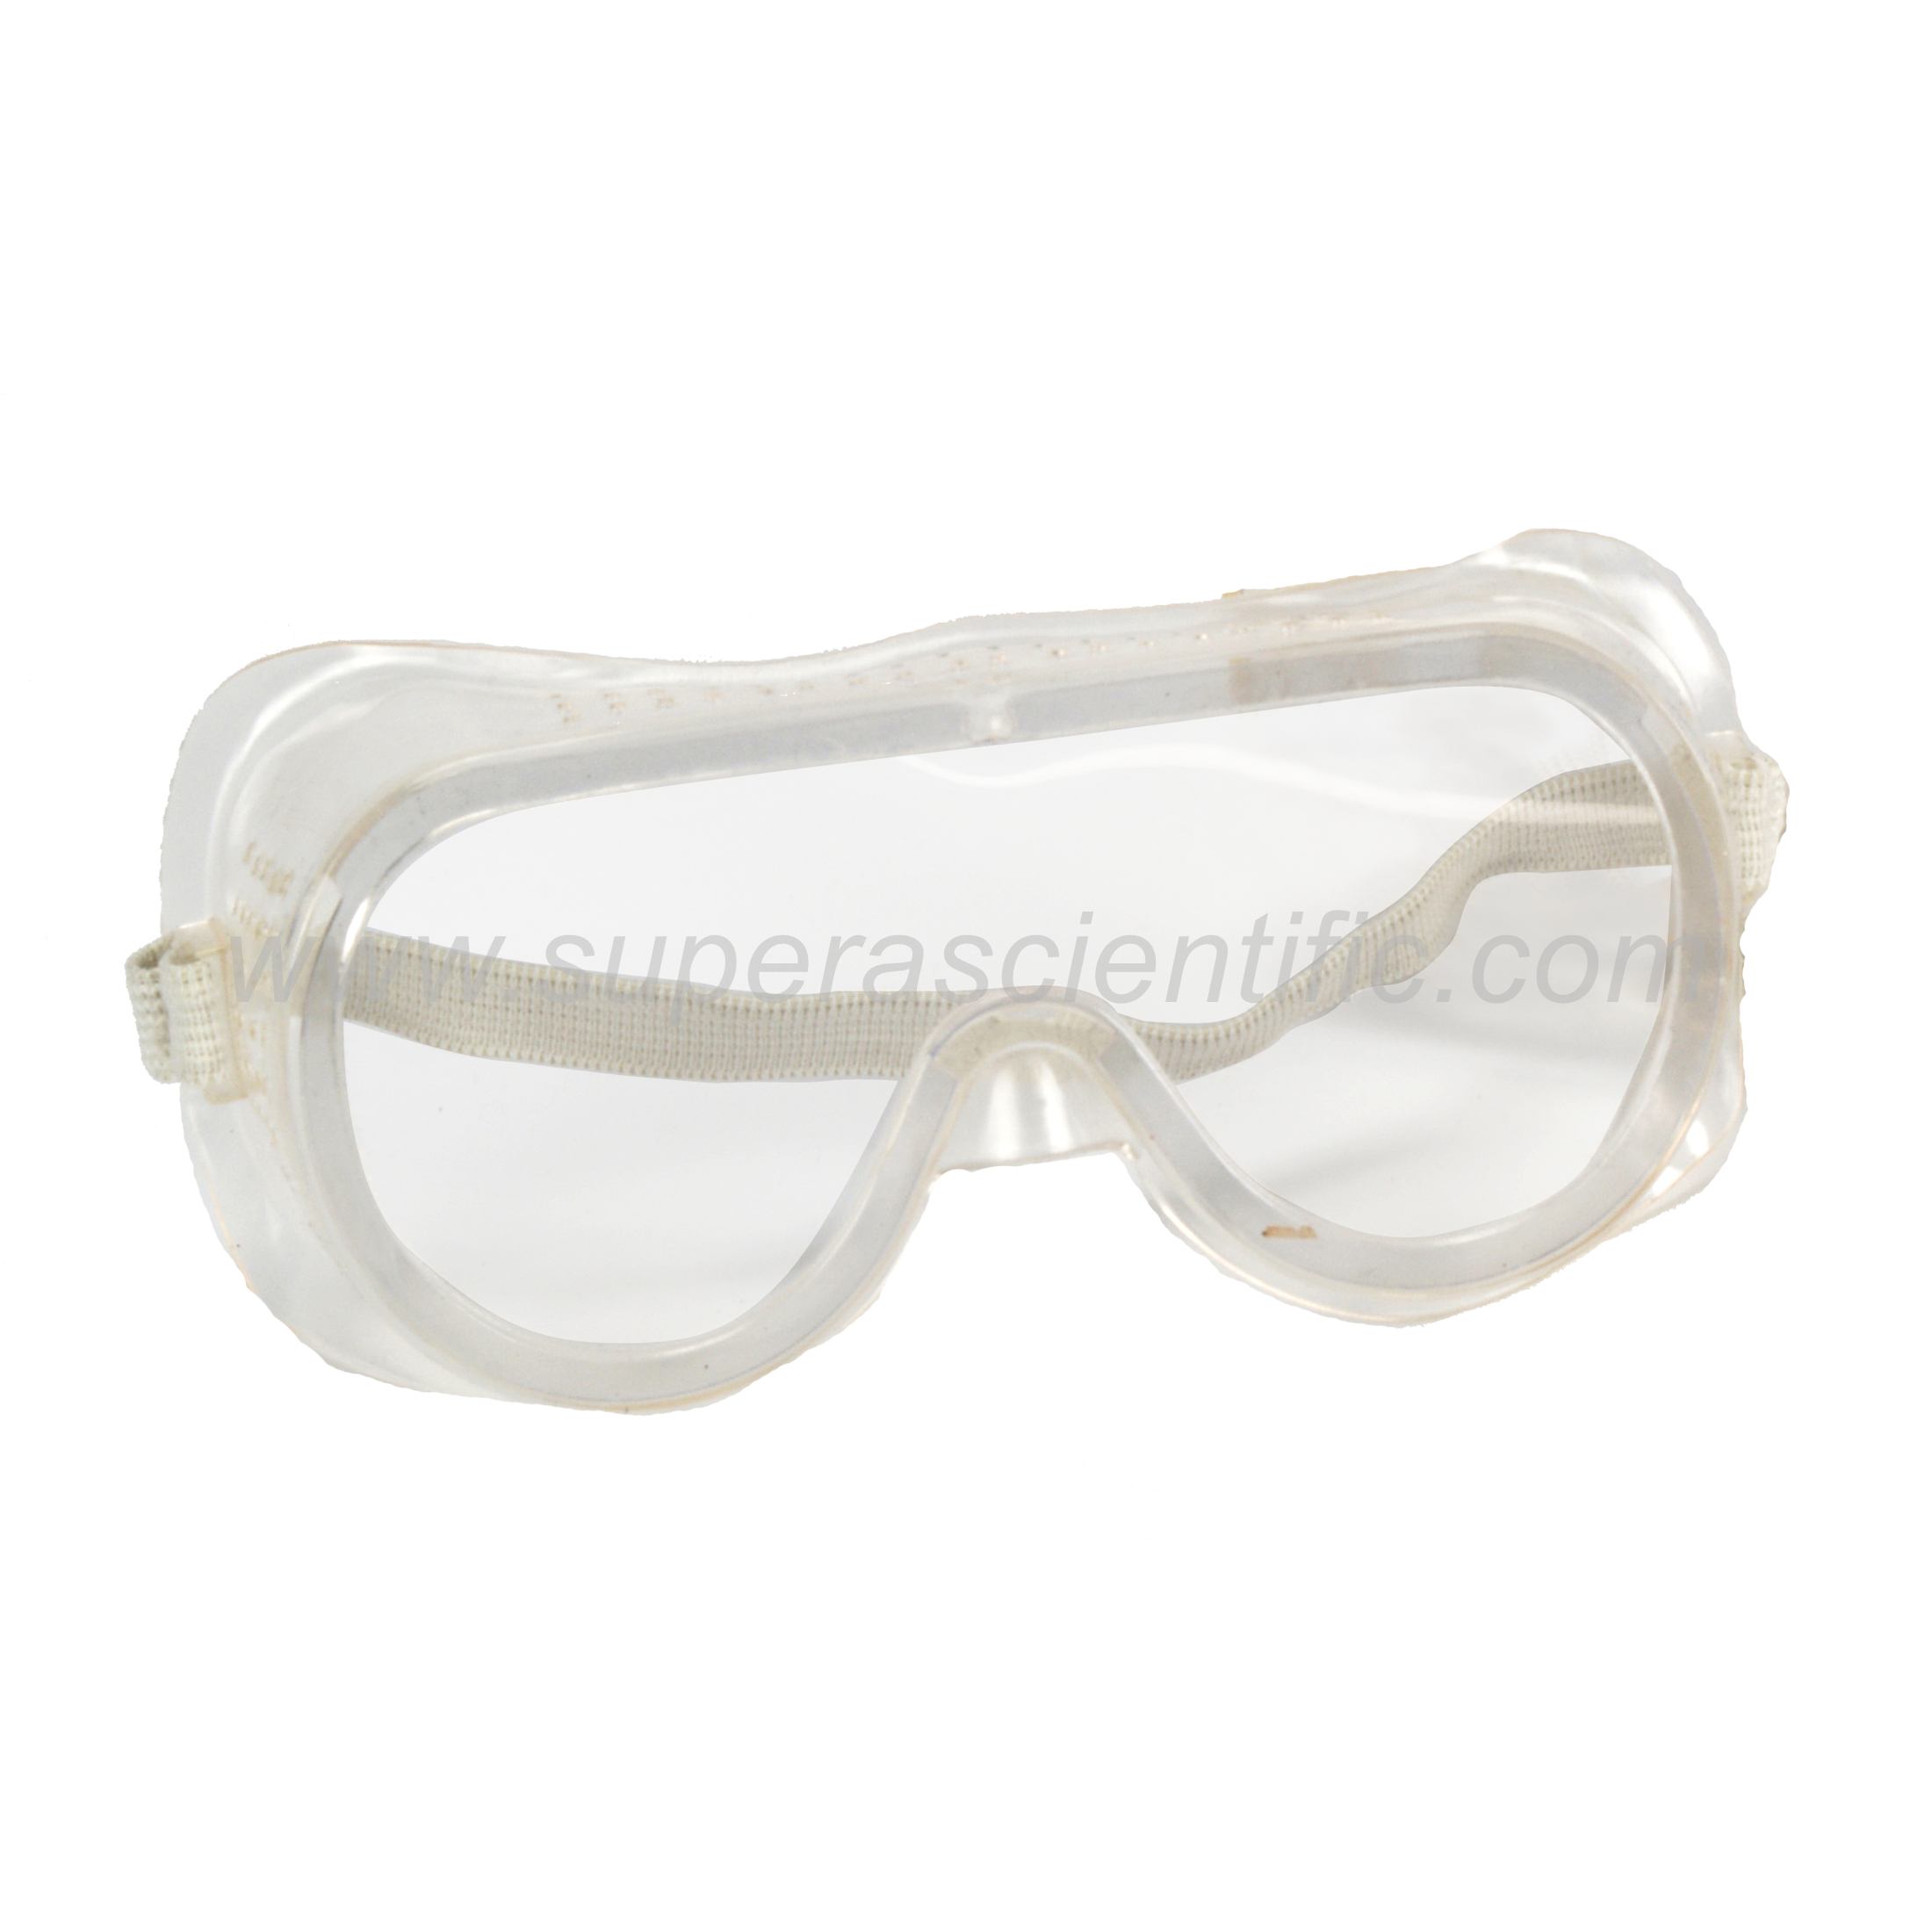 1384 Perforated Goggles - Small